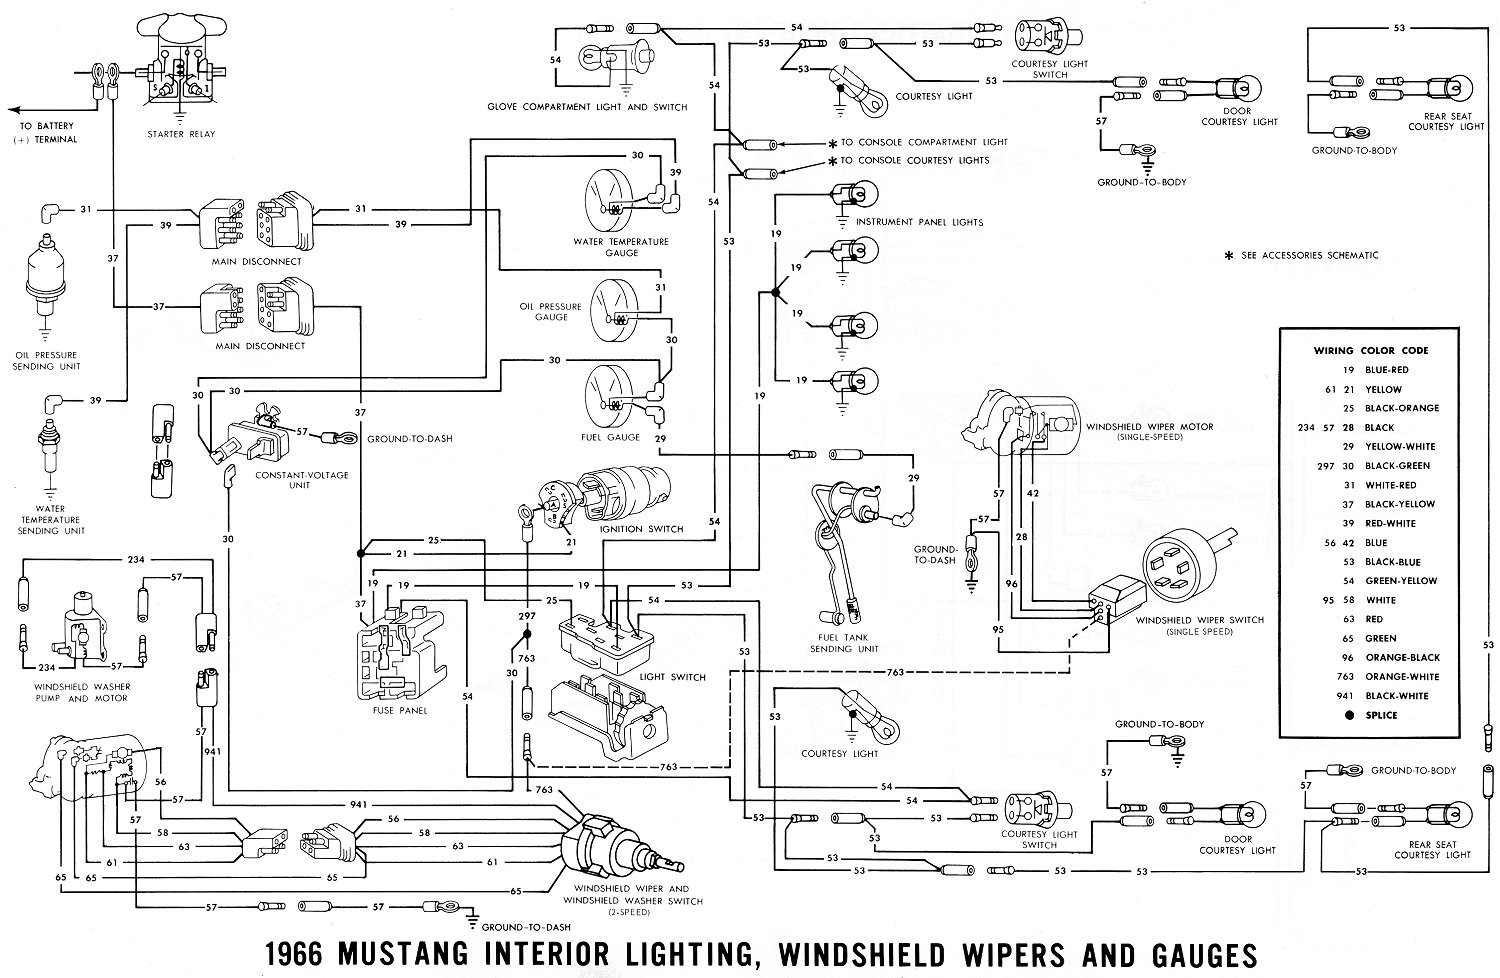 1966 Ford Mustang Wiring Schematic Trusted Schematics Diagram Telephone Diagrams Average Joe Restoration 66 Dash Lights